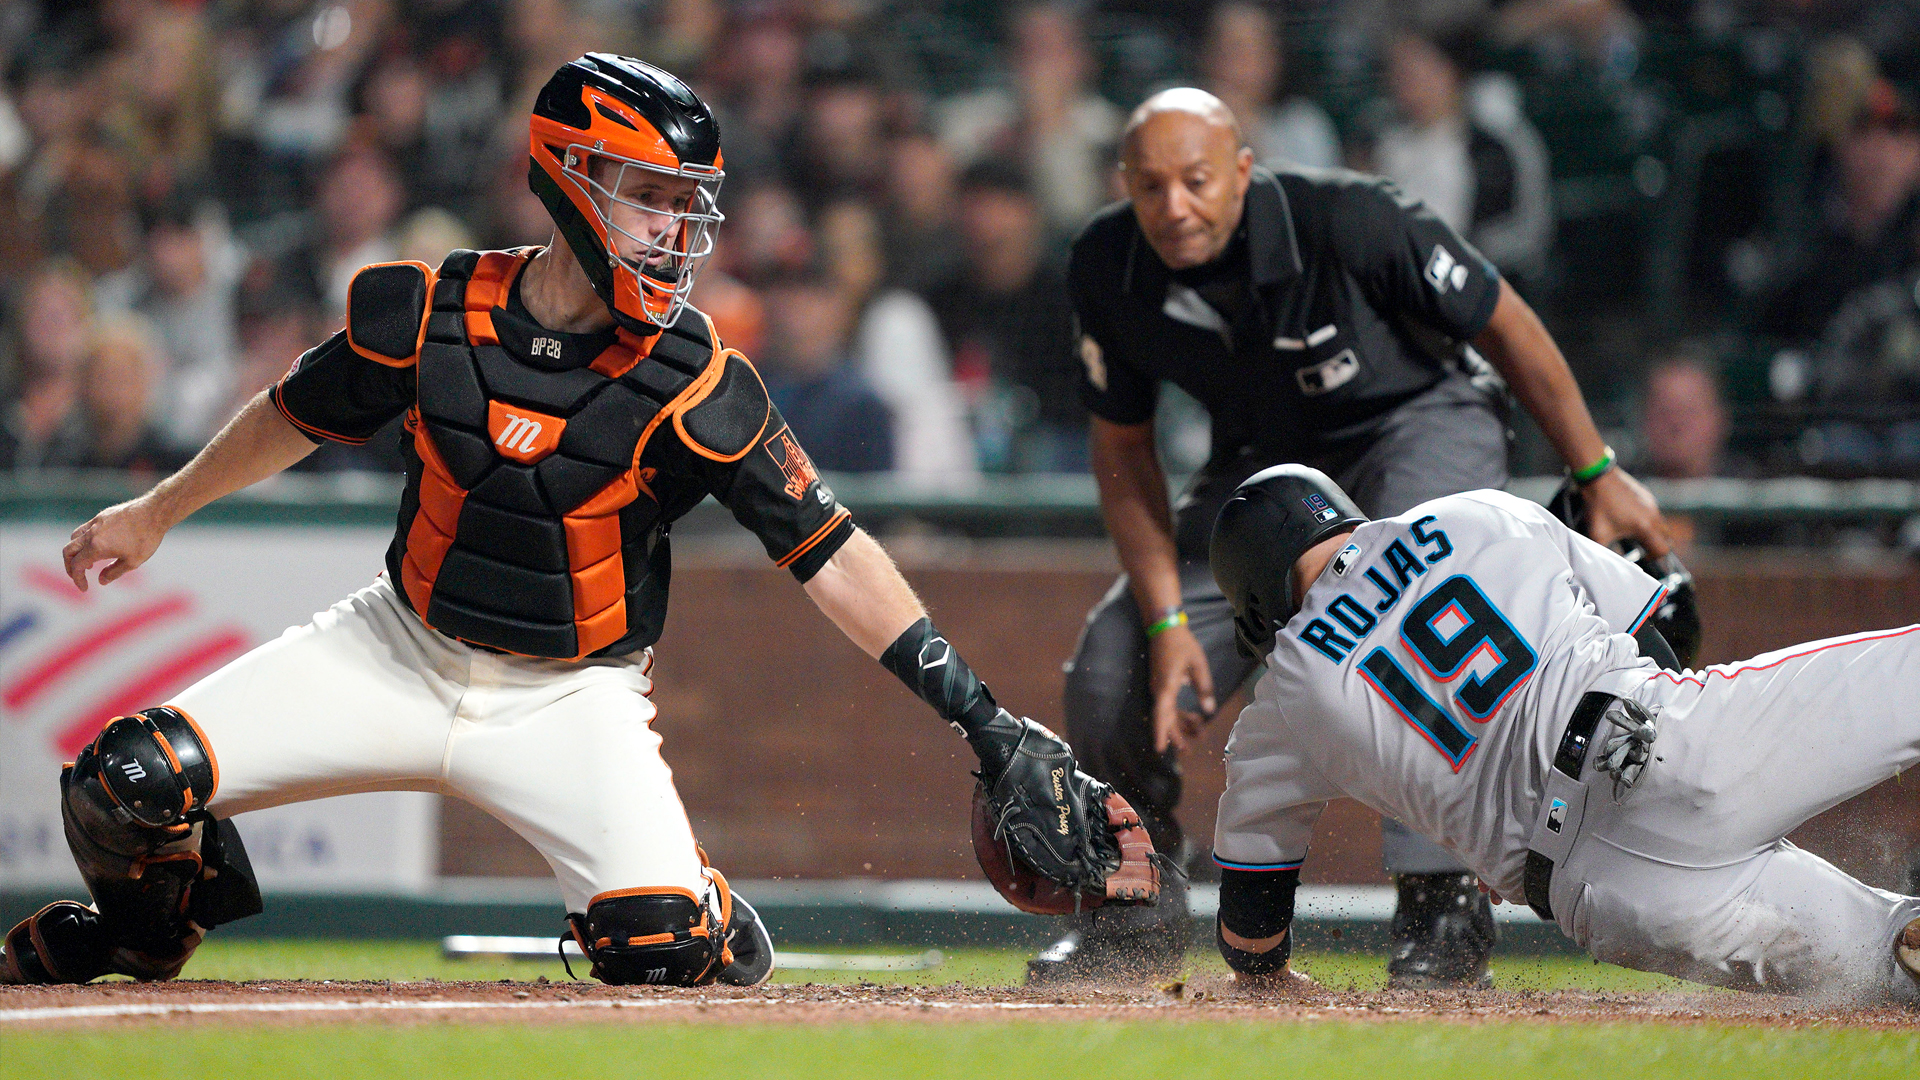 Marlins score two late runs, hand Giants bad home loss